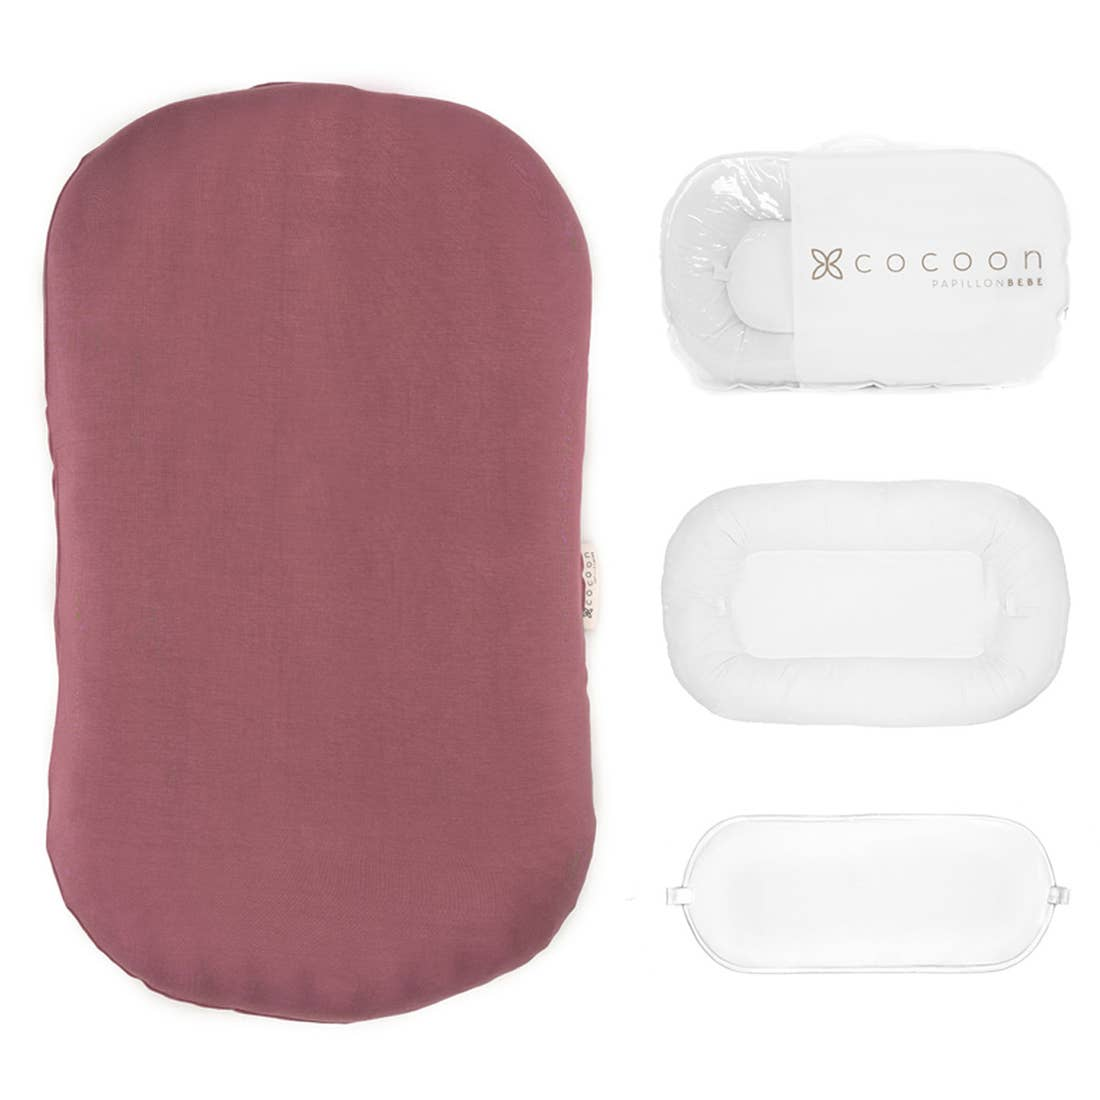 Infant Cocoon Lounger (0-9 months) - Rose